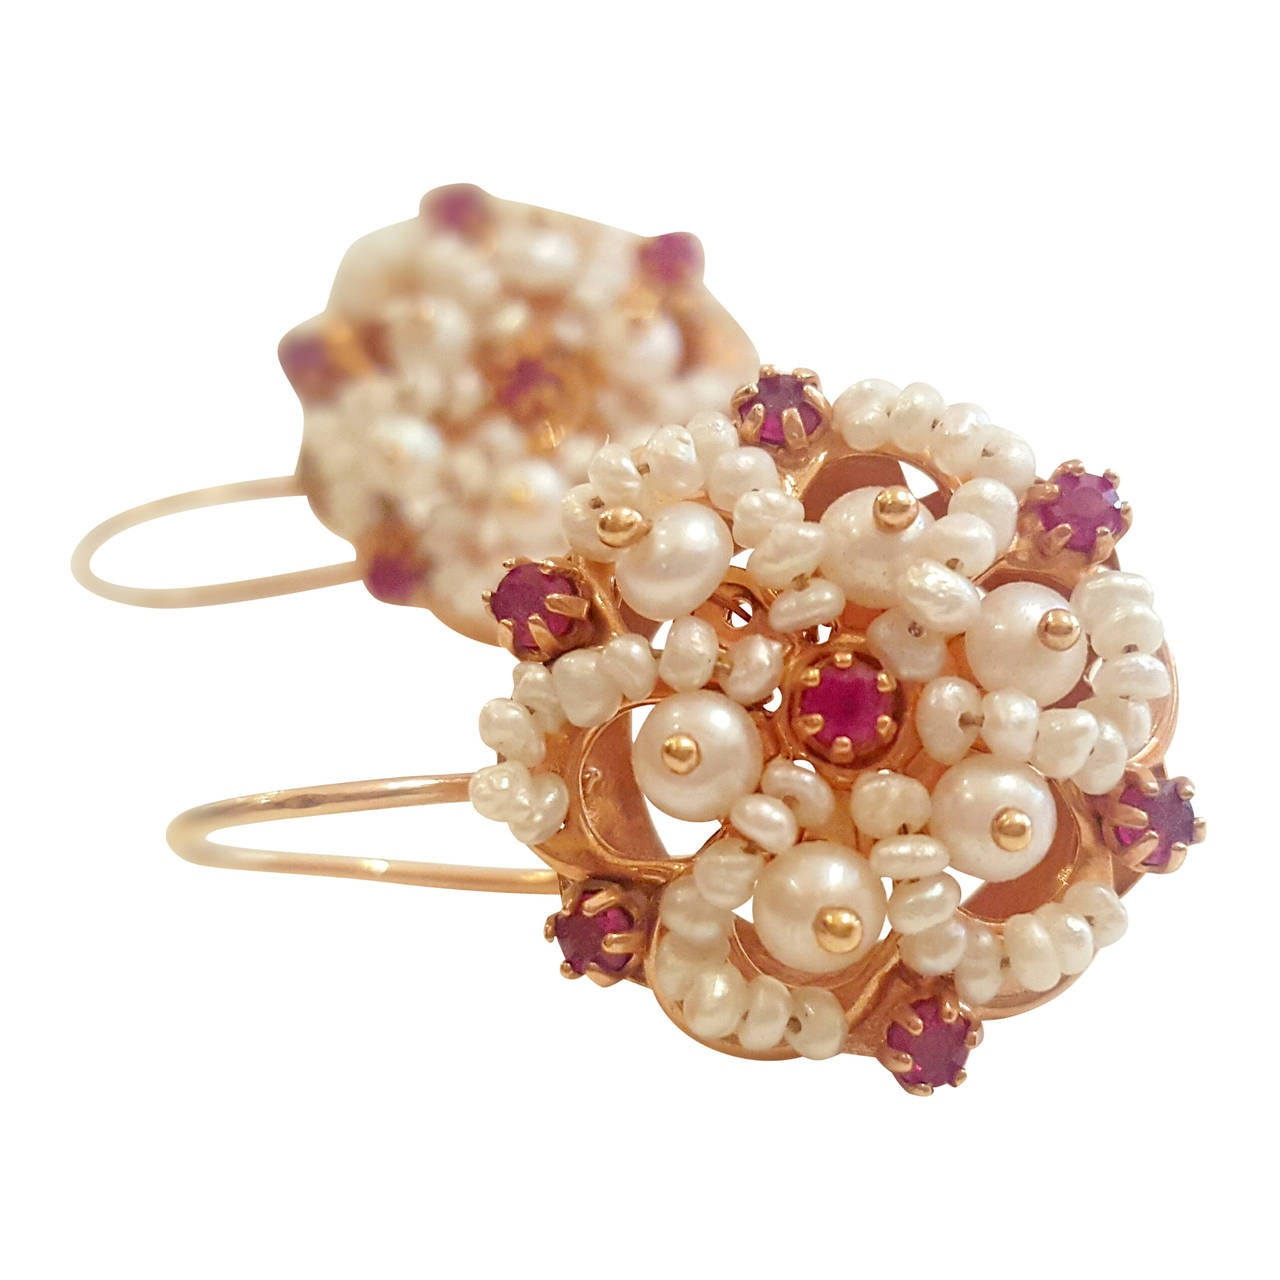 1950s 12kt Gold Earrings With Pearls And Rubins For Sale